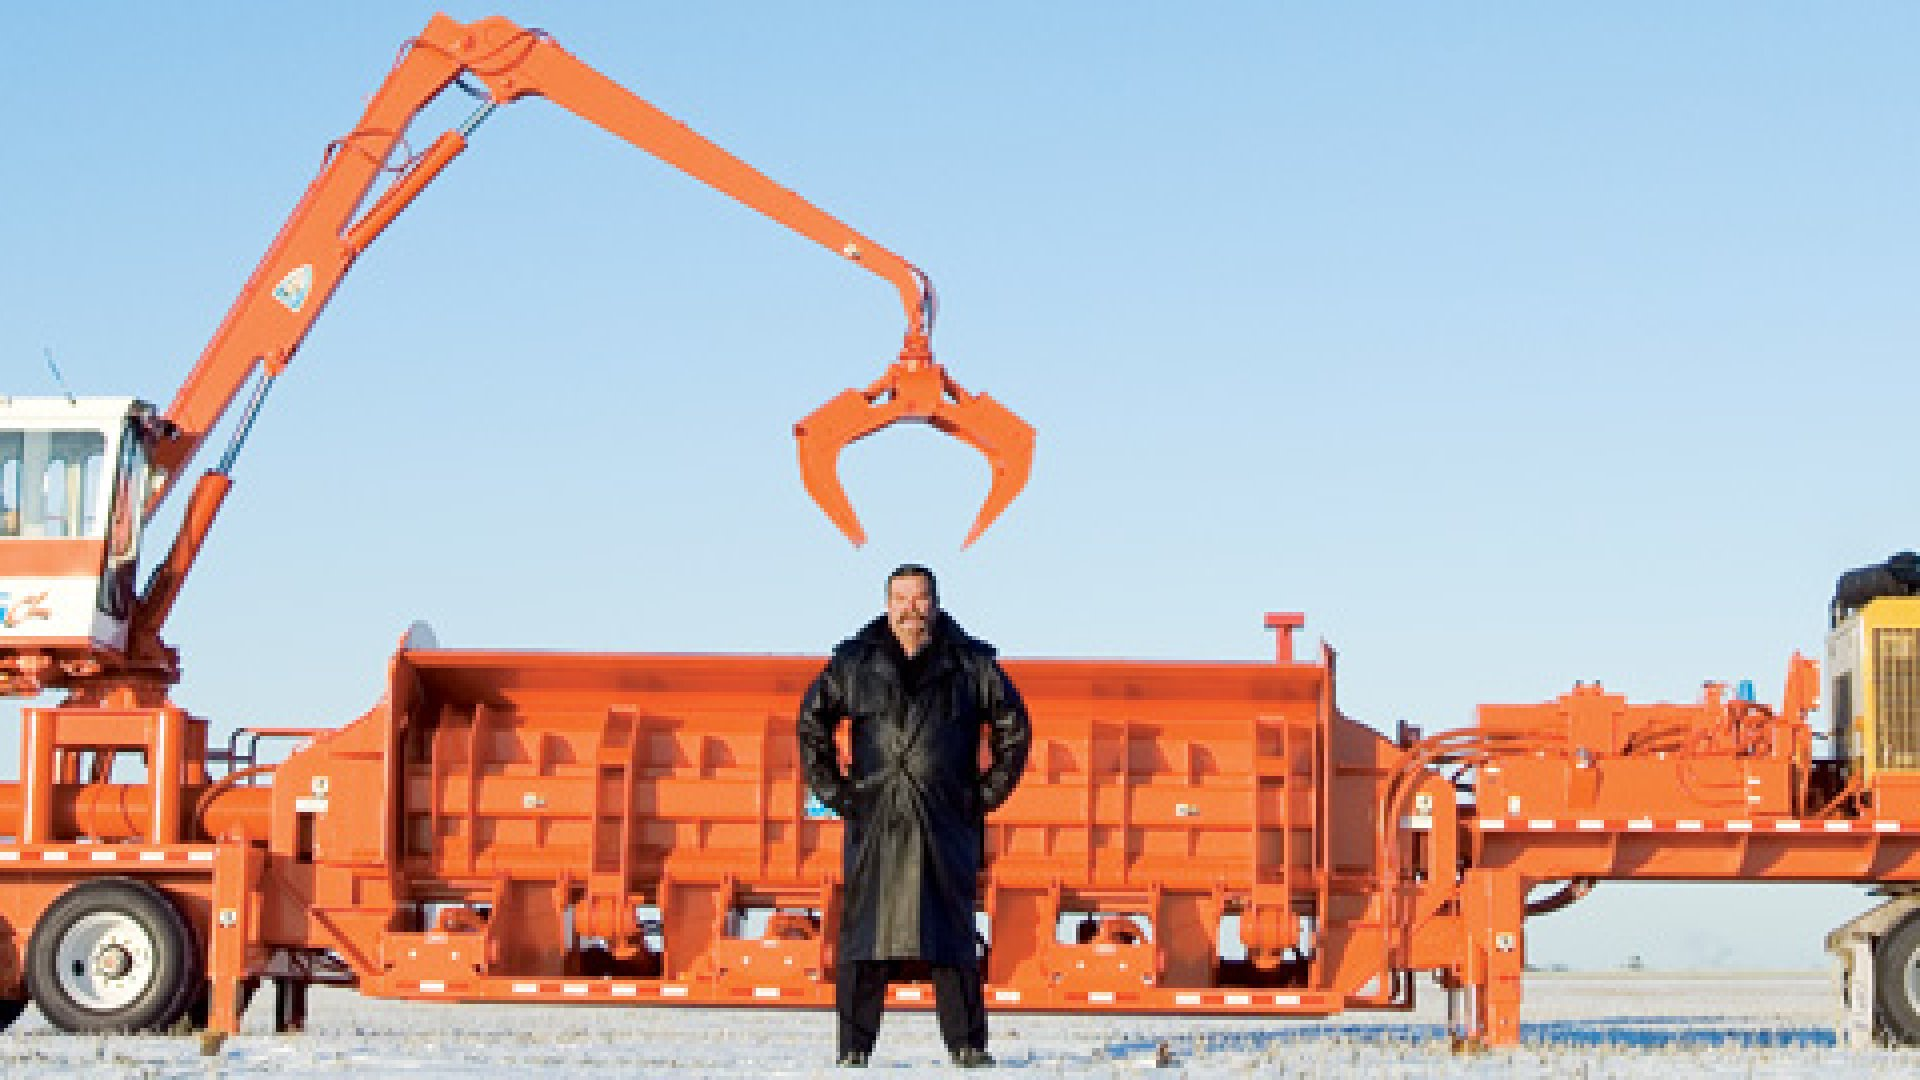 <strong>BIG ENOUGH FOR THE JOB</strong> Kendig Kneen stands with one of his car balers